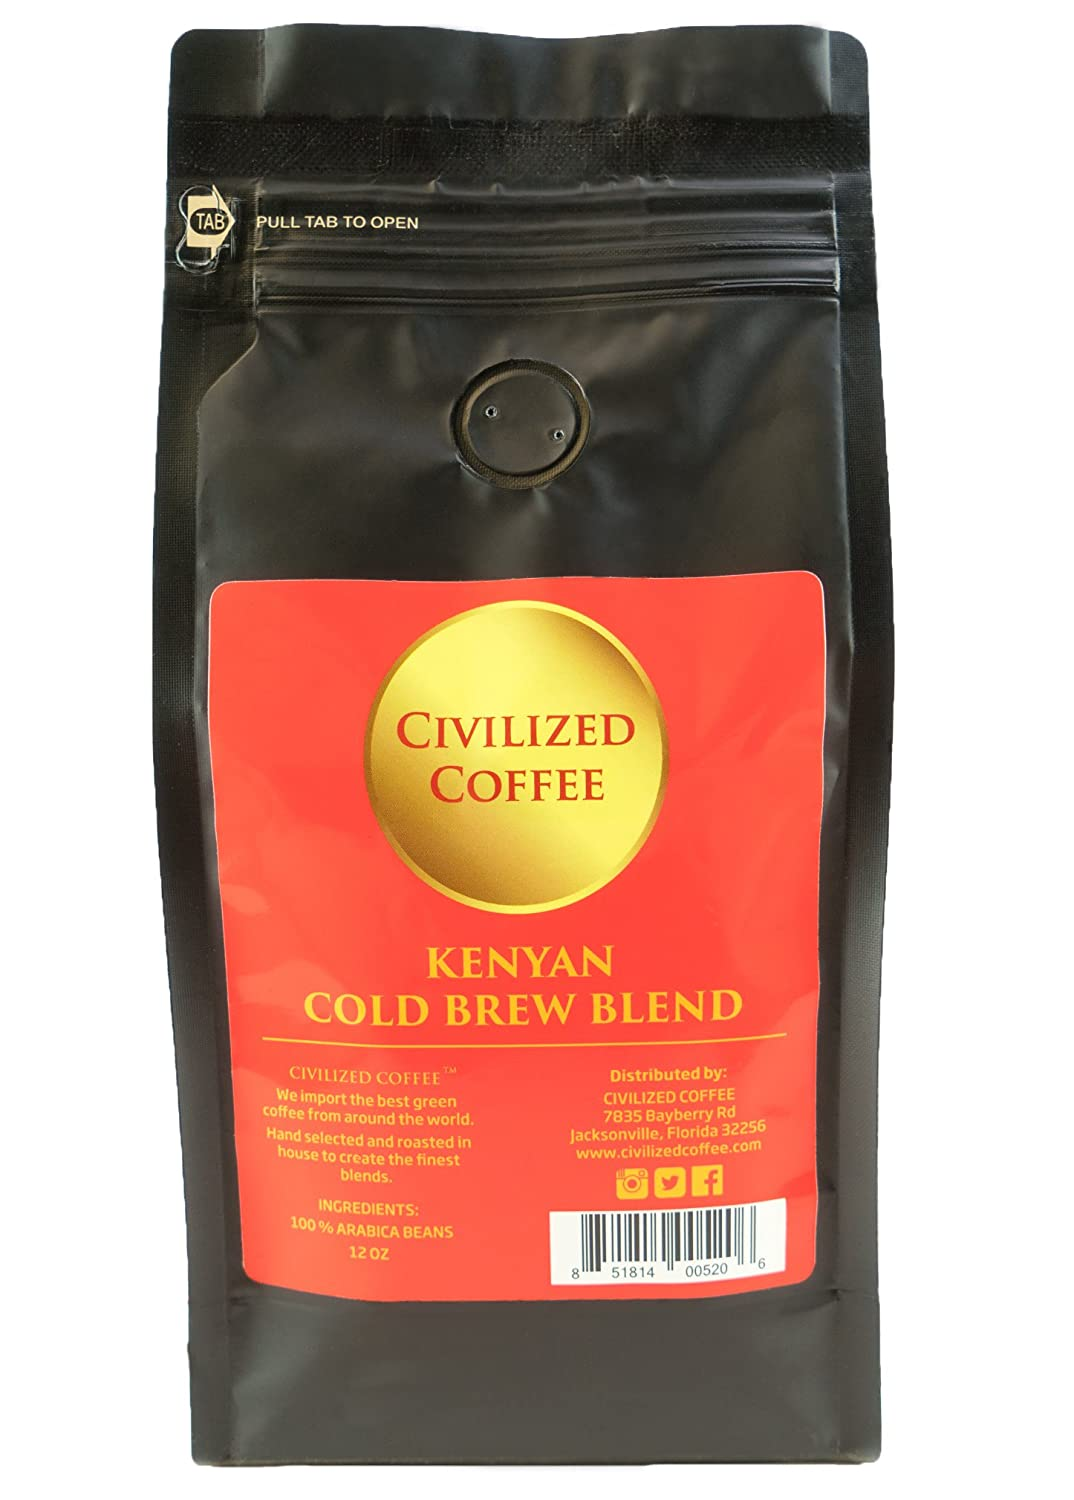 Cold Brew Coffee Coarse Ground Roast African Kenyan AA Blend Arabica Coffee Beans vented 12oz bag CIVILIZED COFFEE